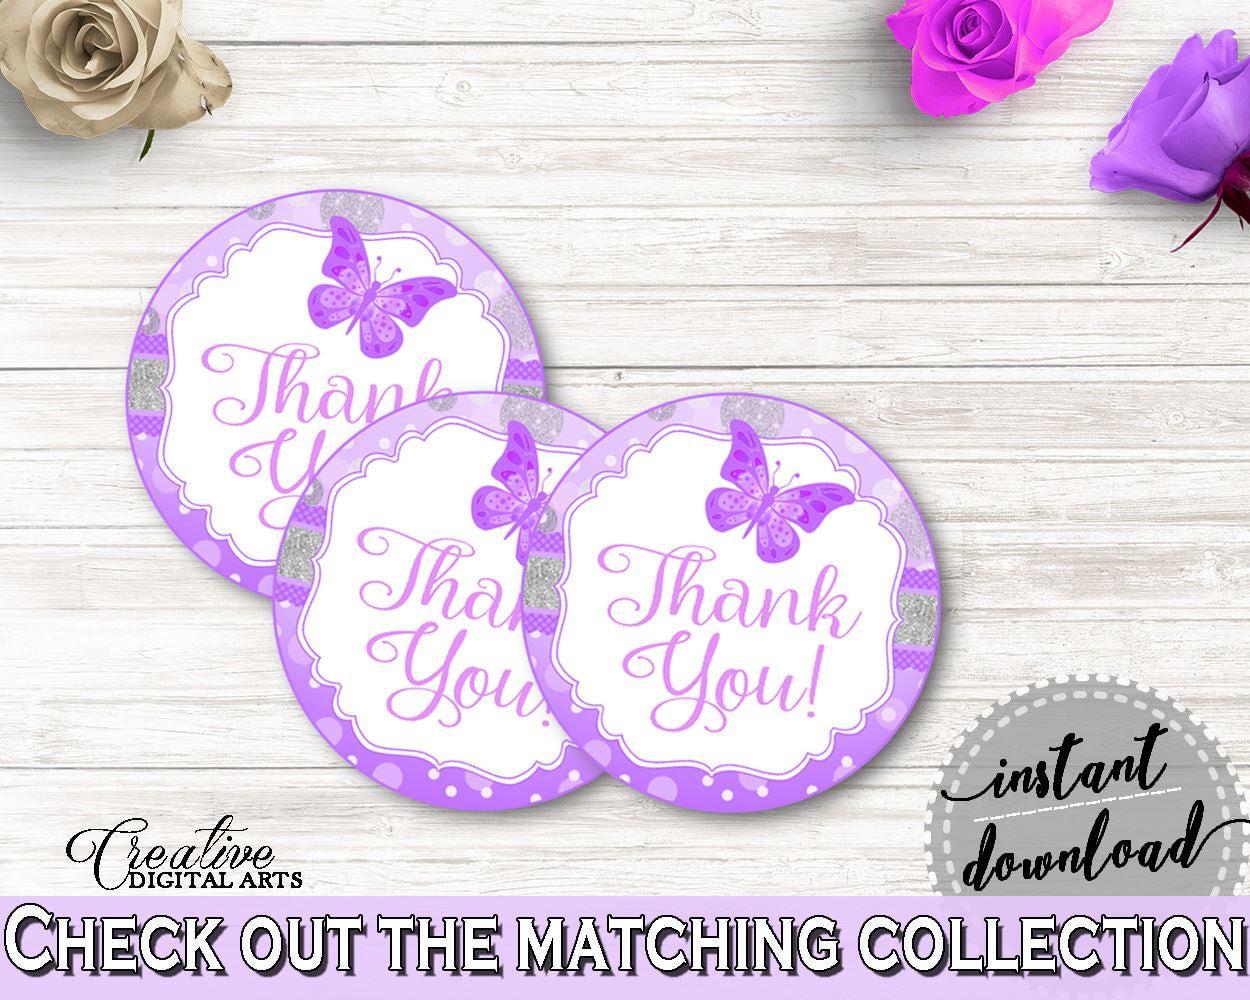 Round Tags Baby Shower Round Tags Butterfly Baby Shower Round Tags Baby Shower Butterfly Round Tags Purple Pink party stuff, prints 7AANK - Digital Product